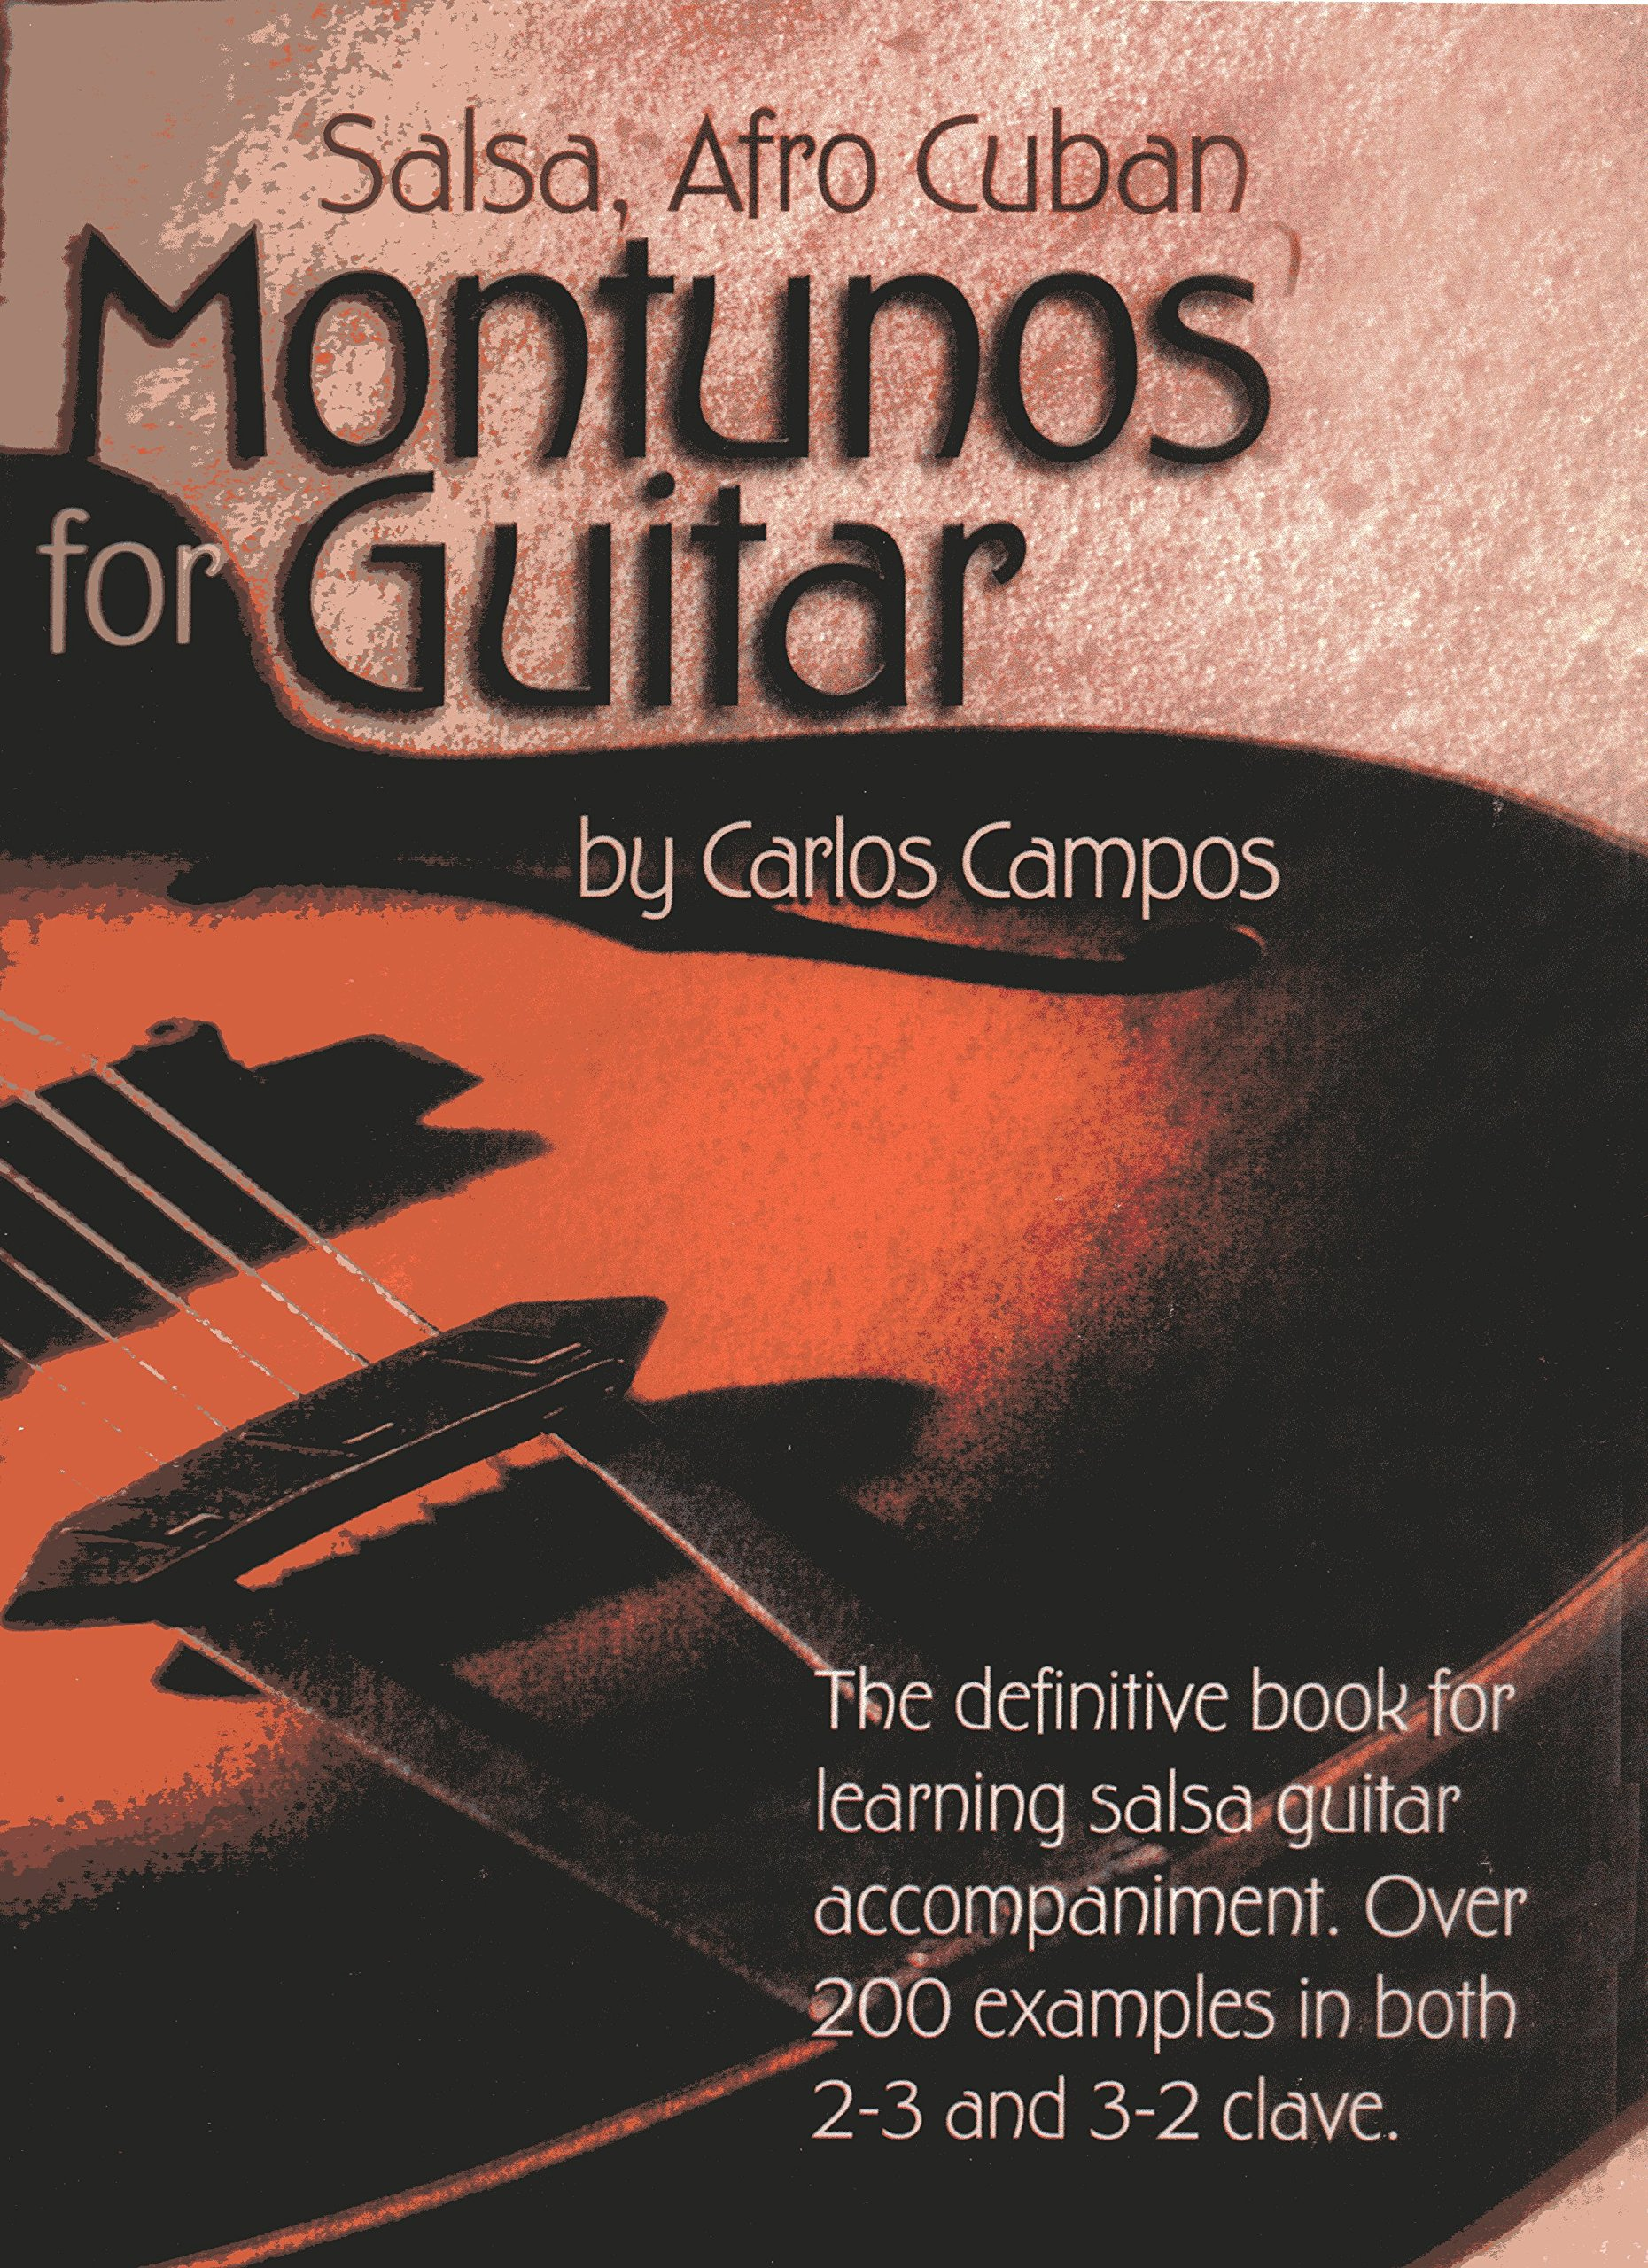 Salsa and Afro Cuban Montunos for Guitar: Gordon Andrew D., Campos Carlos:  0663389103221: Amazon.com: Books